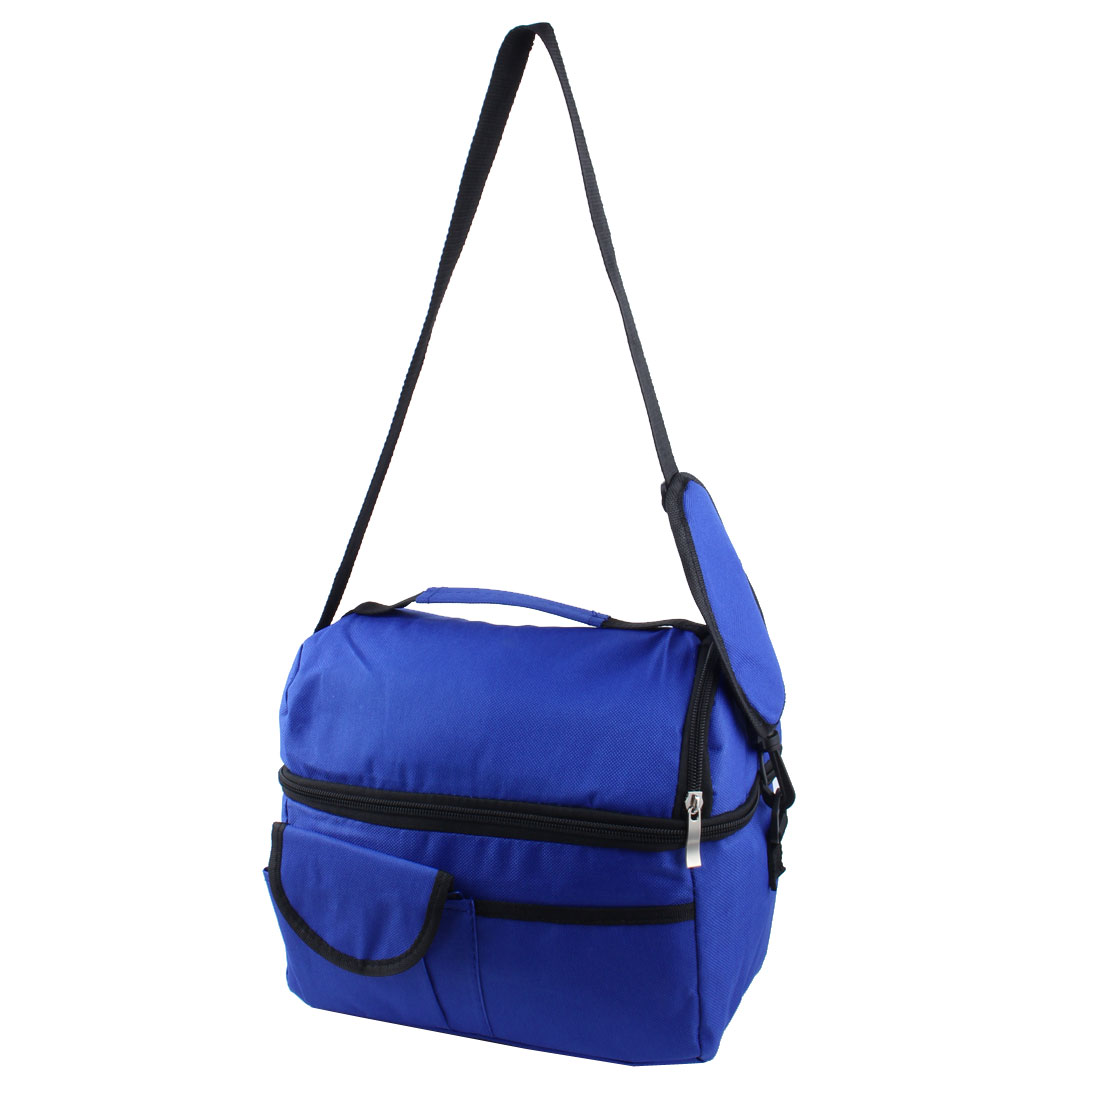 Outdoor Picnic Nylon Portable Double Layer Insulated Lunch Cooler Bag Storage Box Dark Blue